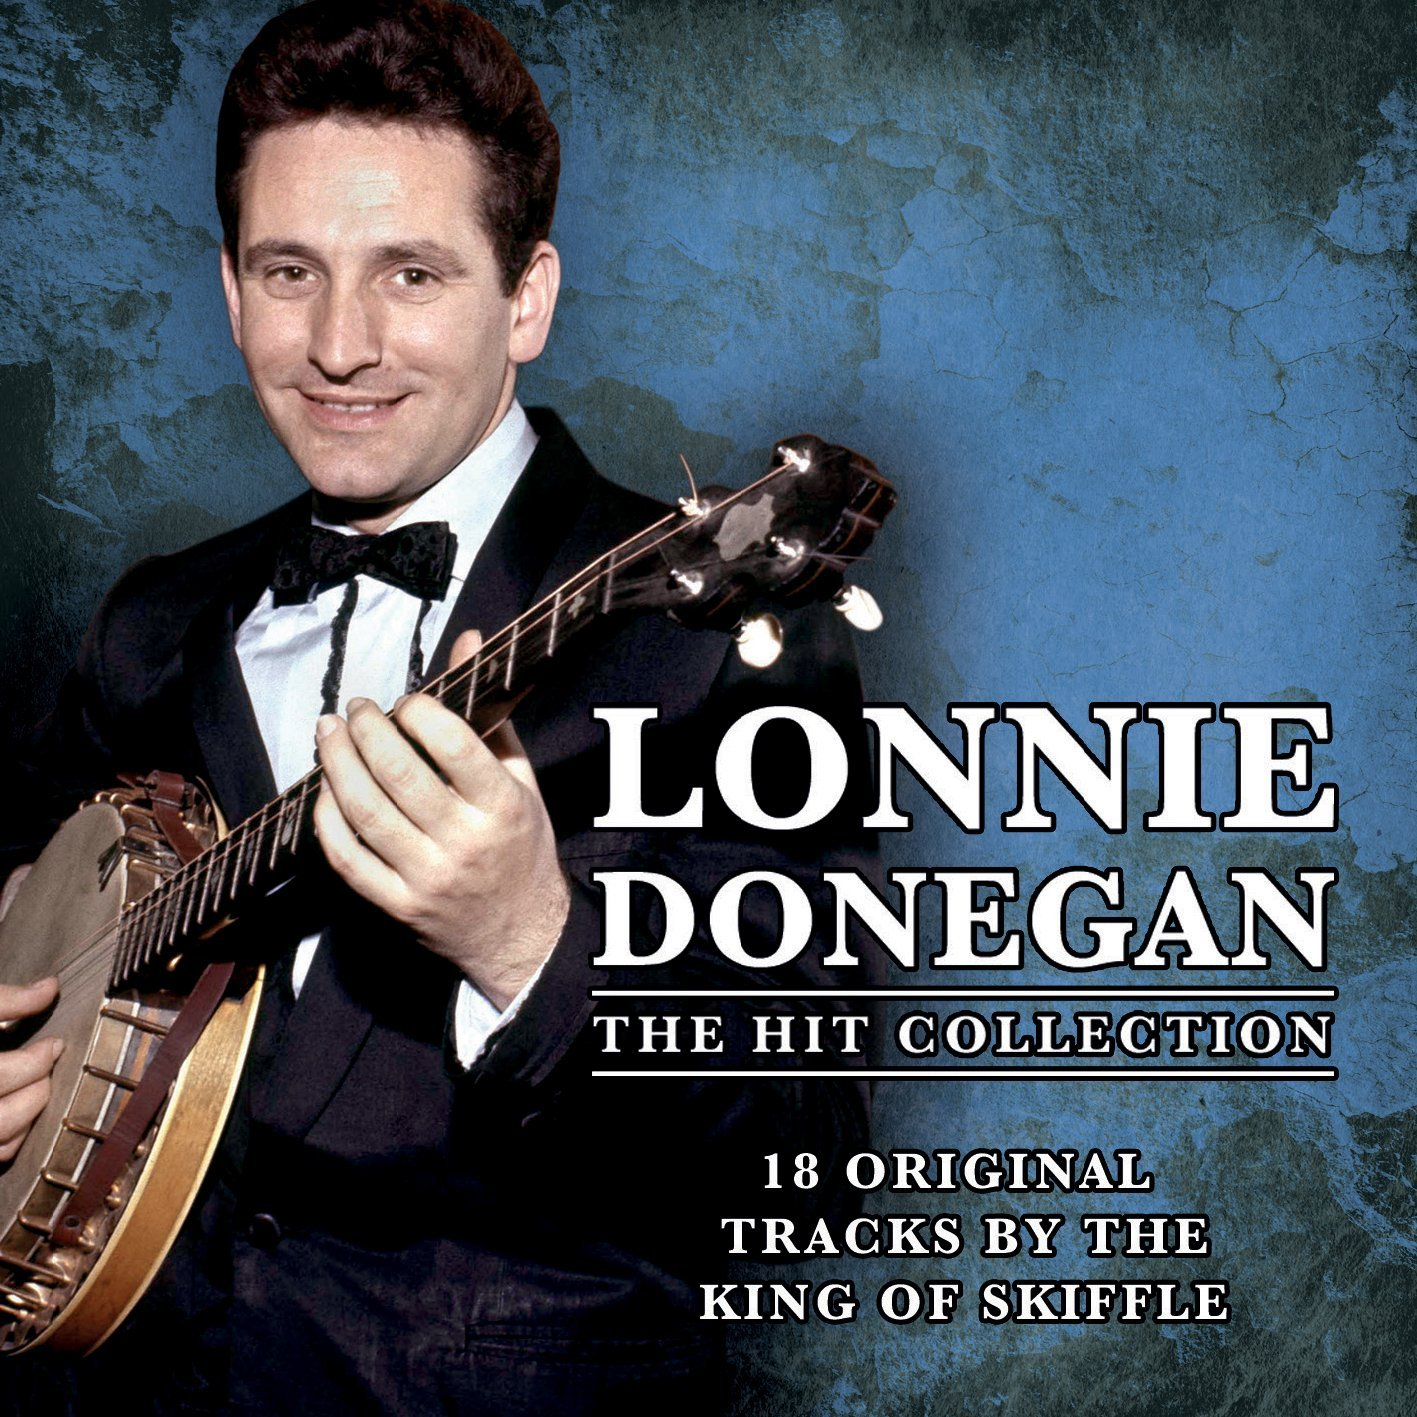 LONNIE DONEGAN - HIT COLLECTION - CD - Amazon.com Music